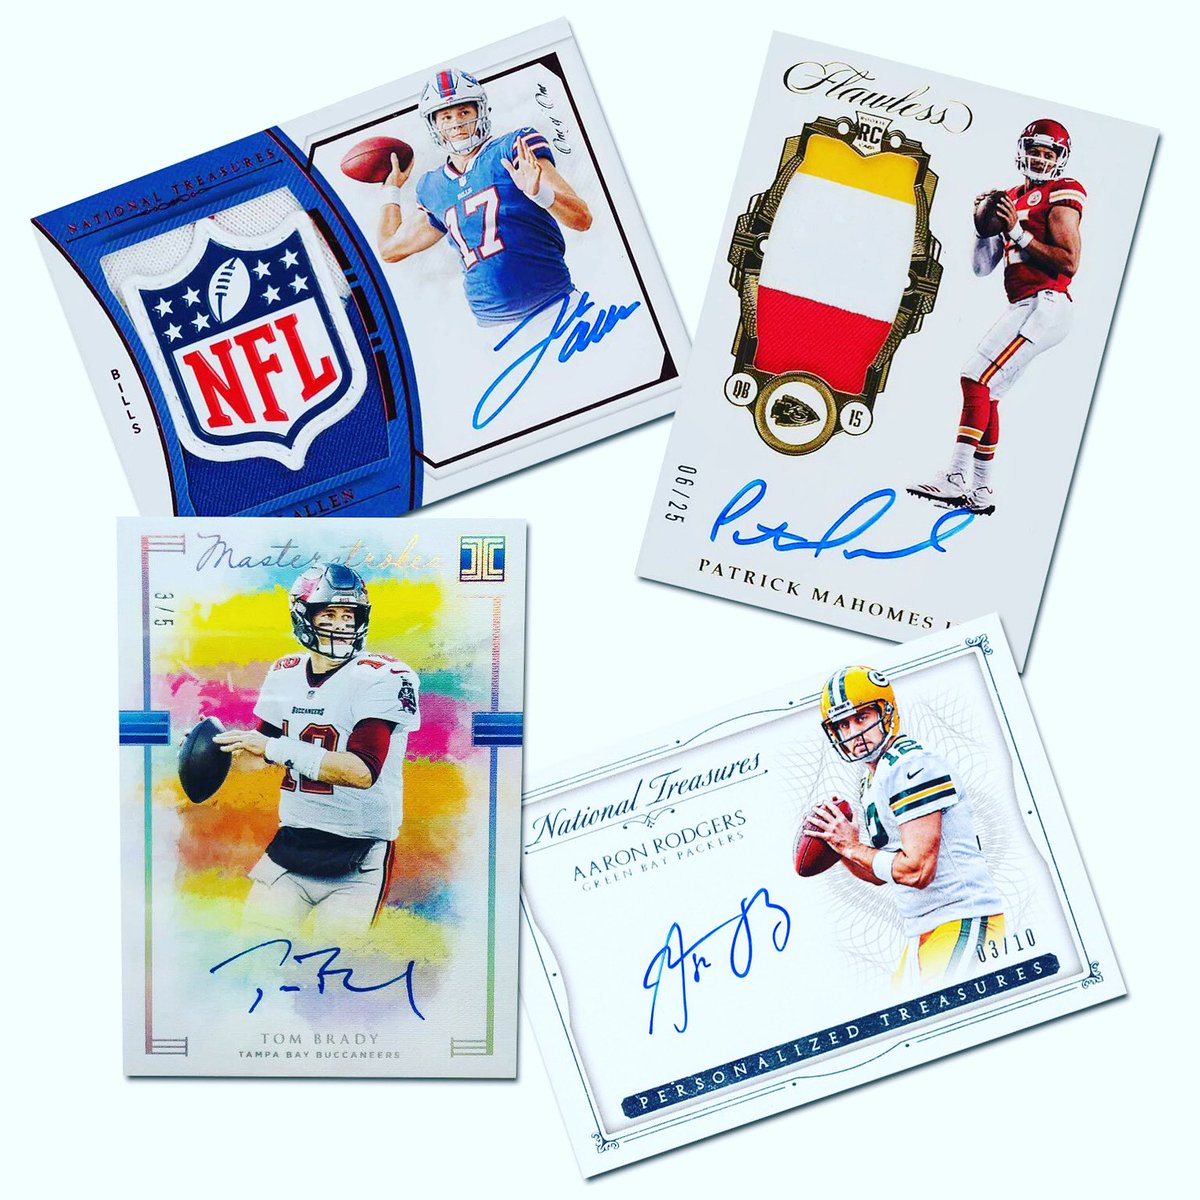 The Final Four is set. Next Sunday can't get here soon enough.  @TomBrady & the @Buccaneers vs. @AaronRodgers12 & the @packers.  @JoshAllenQB & the @BuffaloBills vs. @PatrickMahomes & the @Chiefs.  #WhoDoYouCollect  #GoBucs | #GoPackGo  #BillsMafia | #CHIEFSKINGDOM